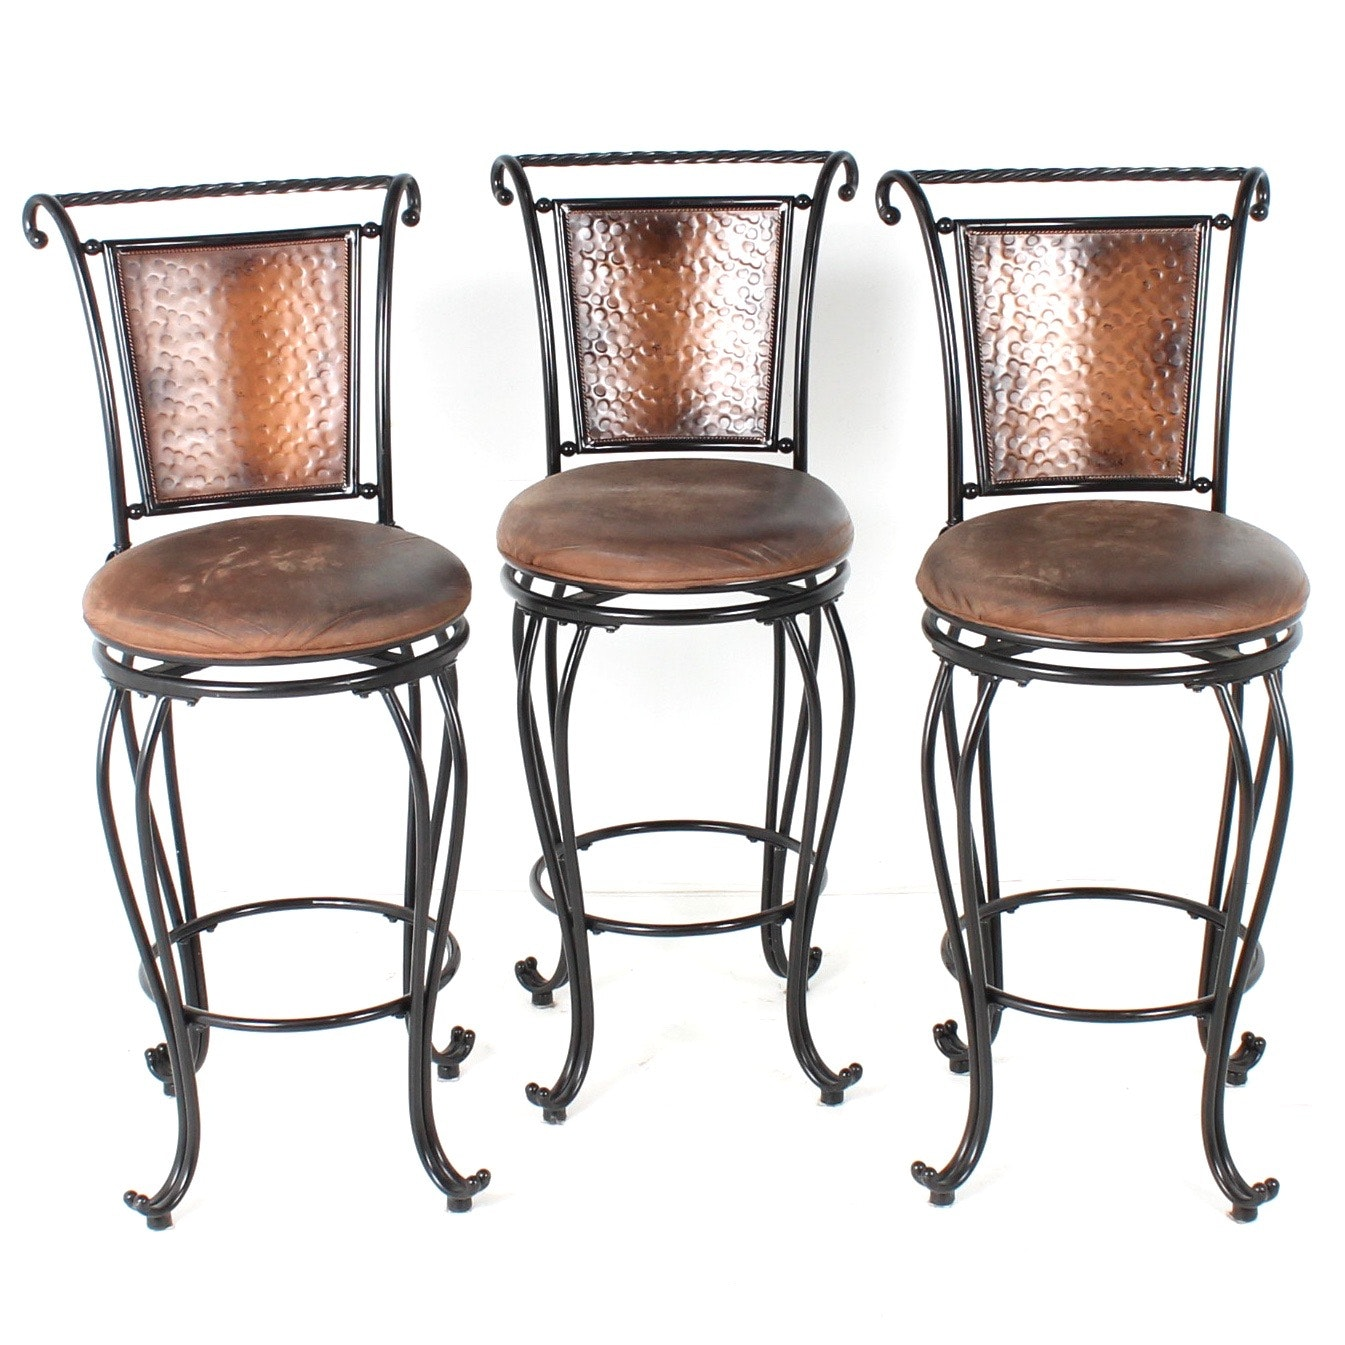 Hillsdale Furniture Leather and Hammered Copper Bar Stools